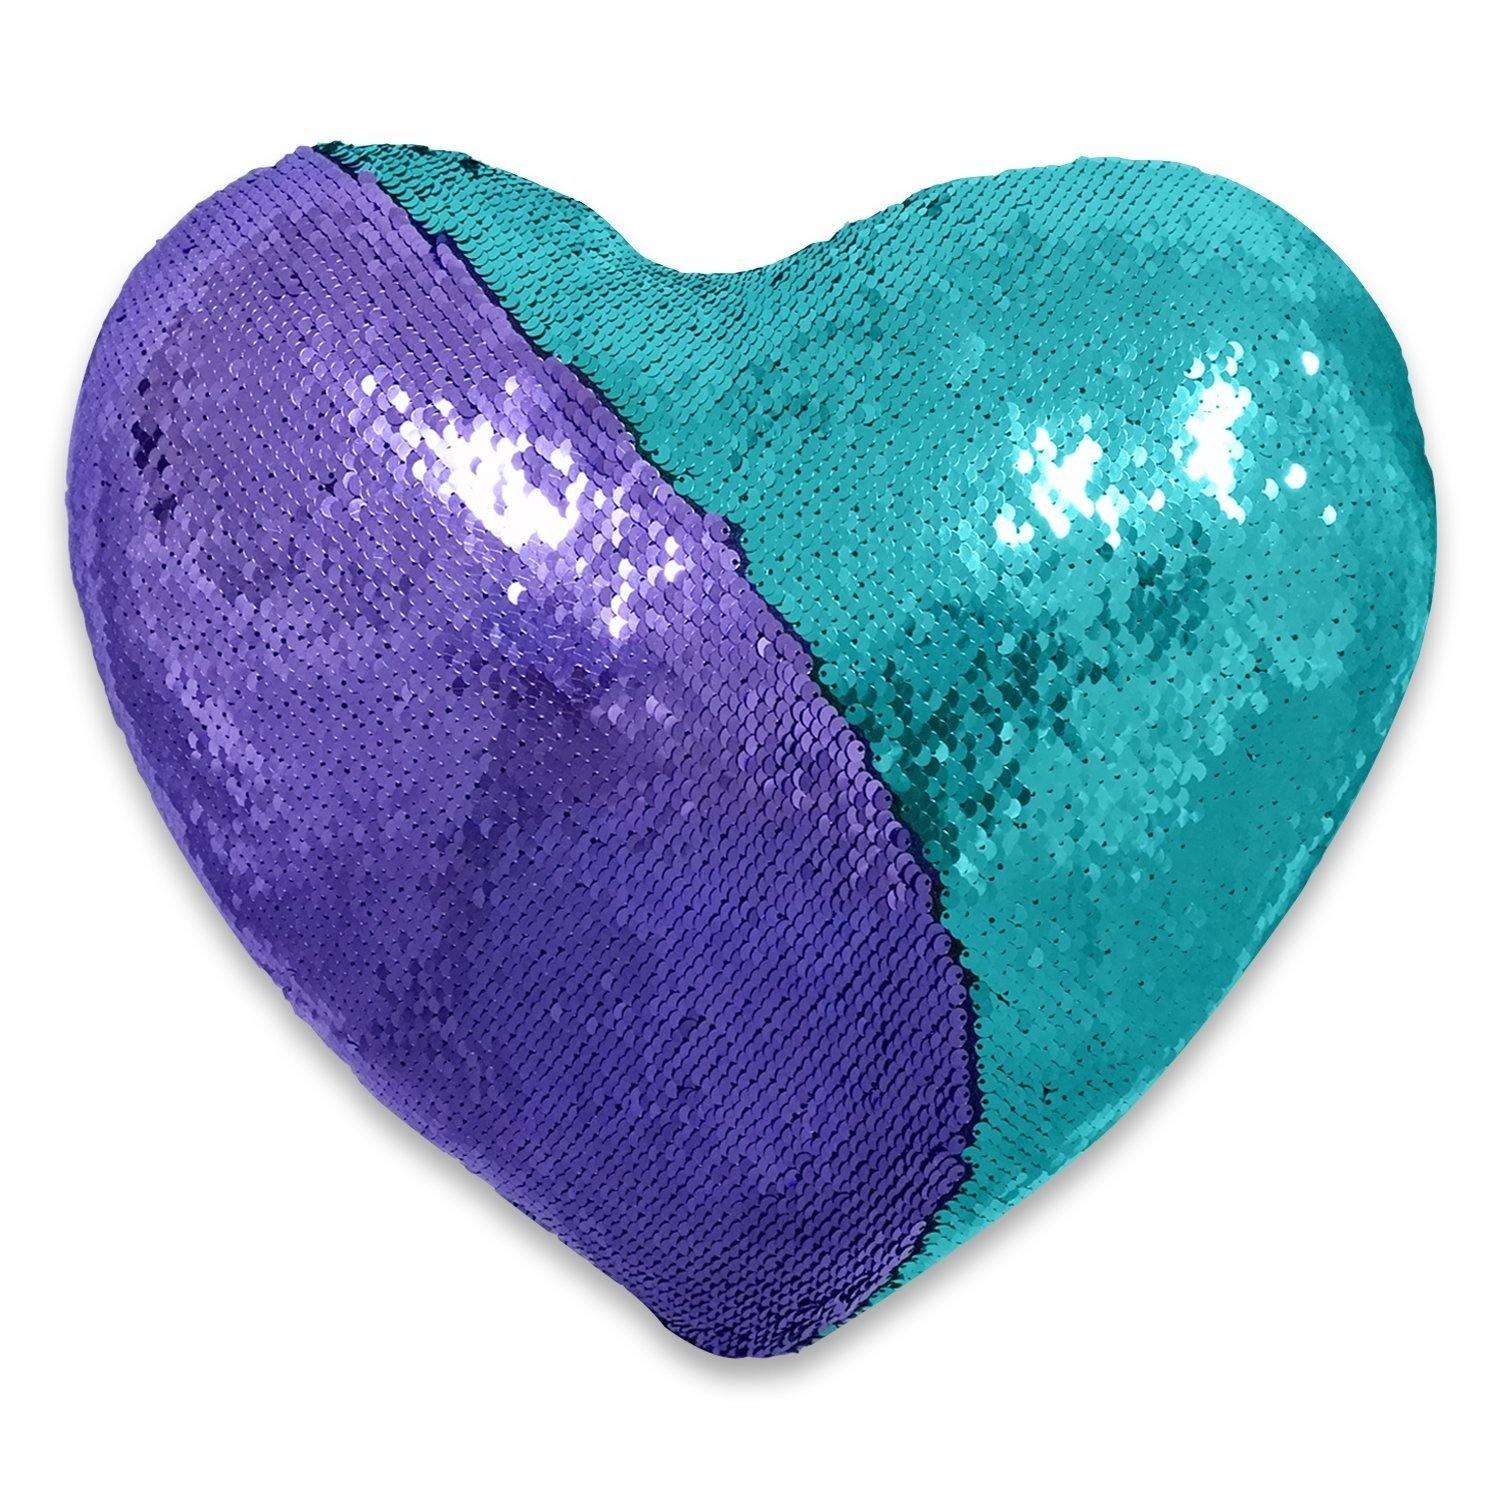 QQB Mermaid pillow, Reversible Sequin color Heart shaped decorative throw pillow with pillow insert, 13''×15''(sky blue and purple)